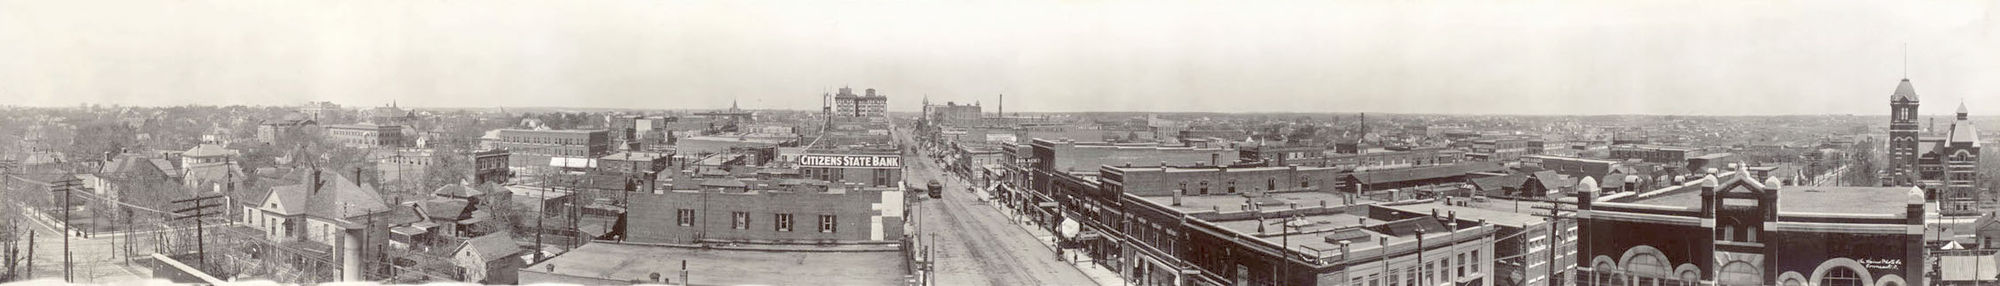 Panorama Of Joplin In 1910